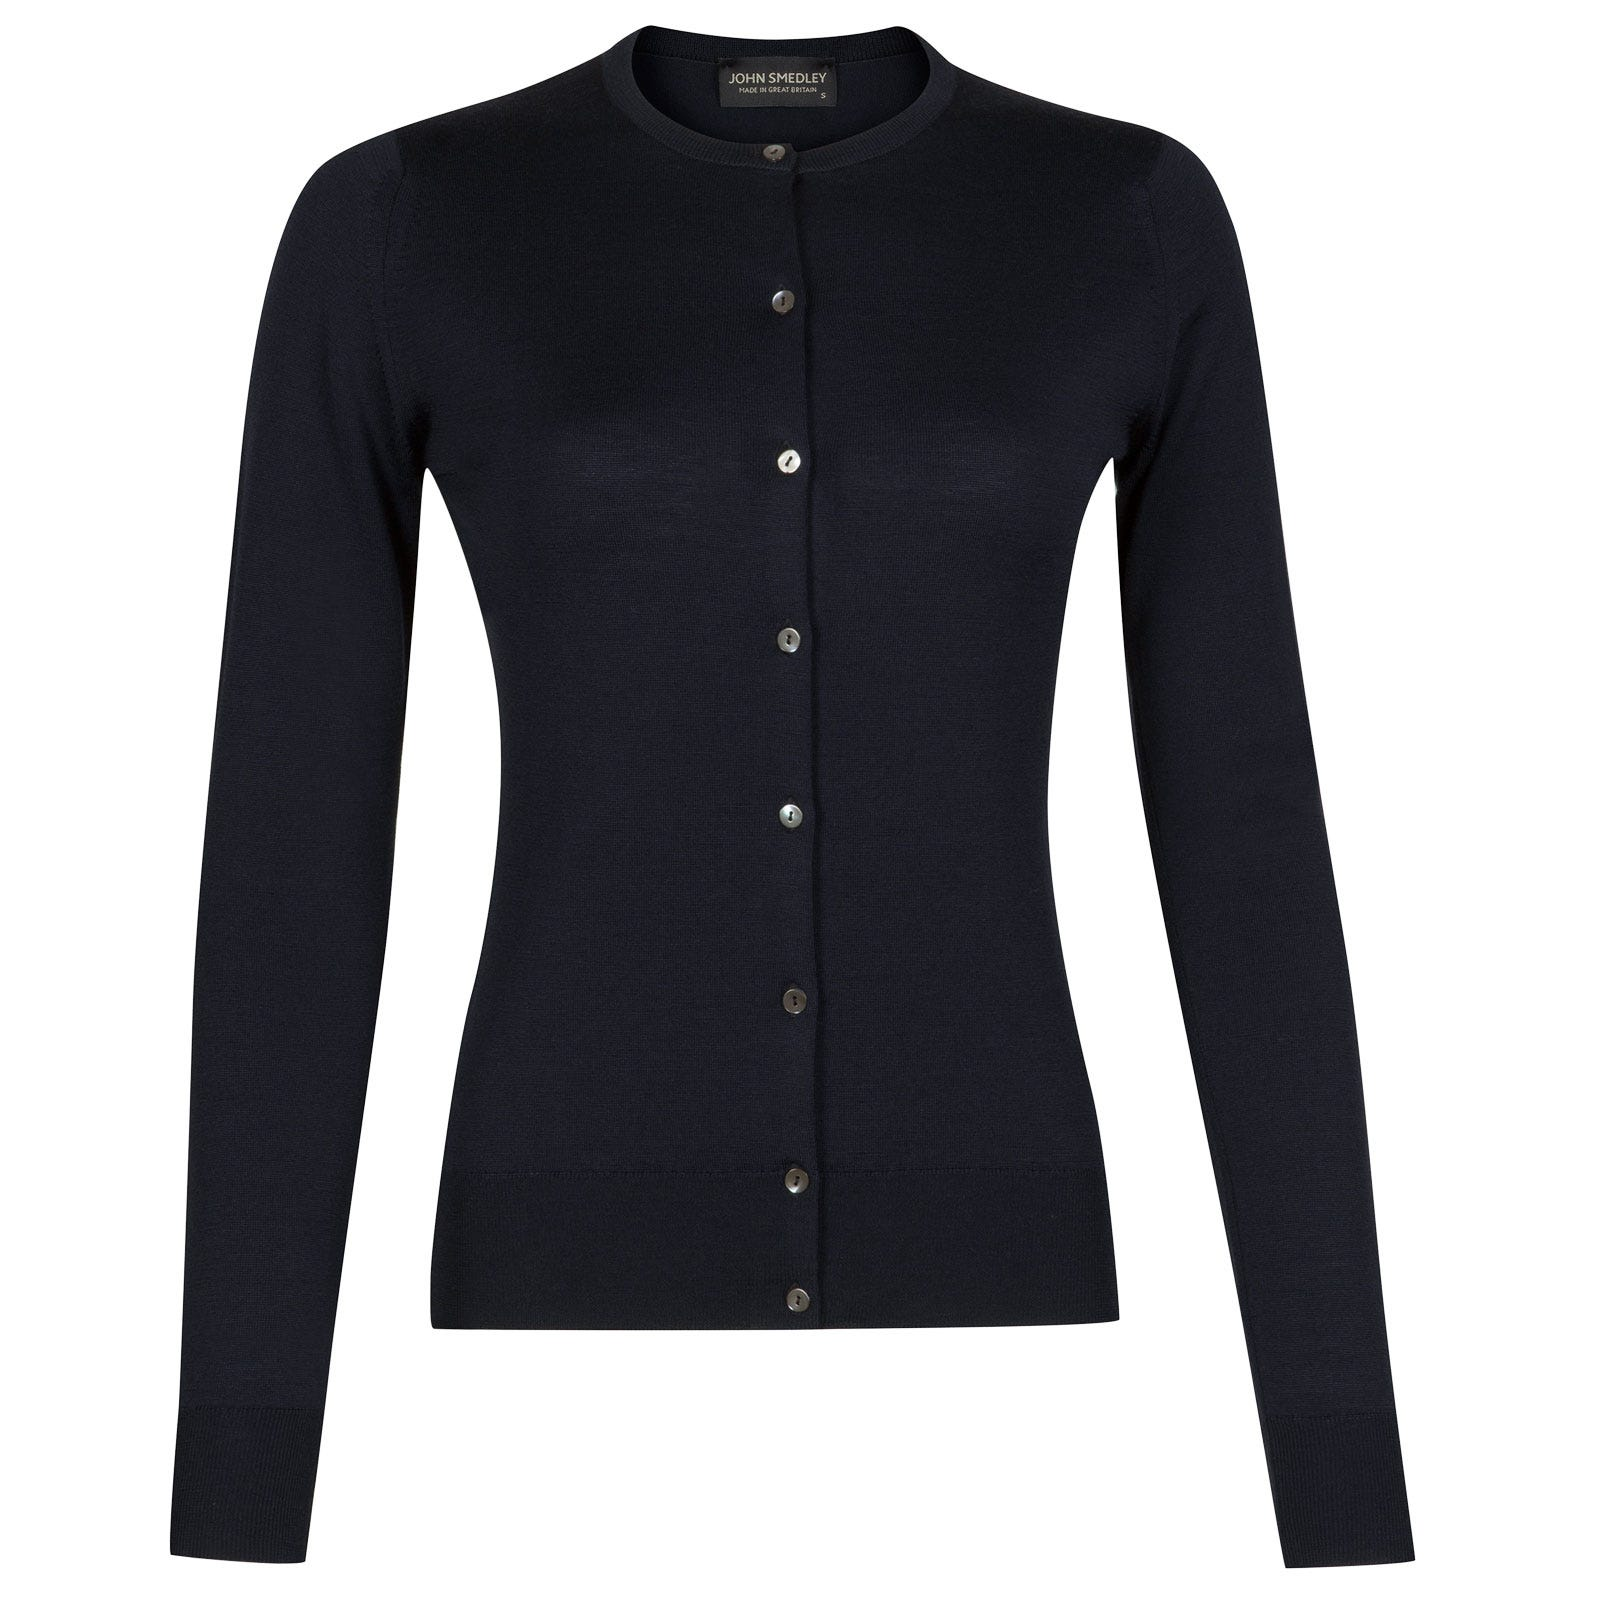 John Smedley pansy Merino Wool Cardigan in Midnight-XL